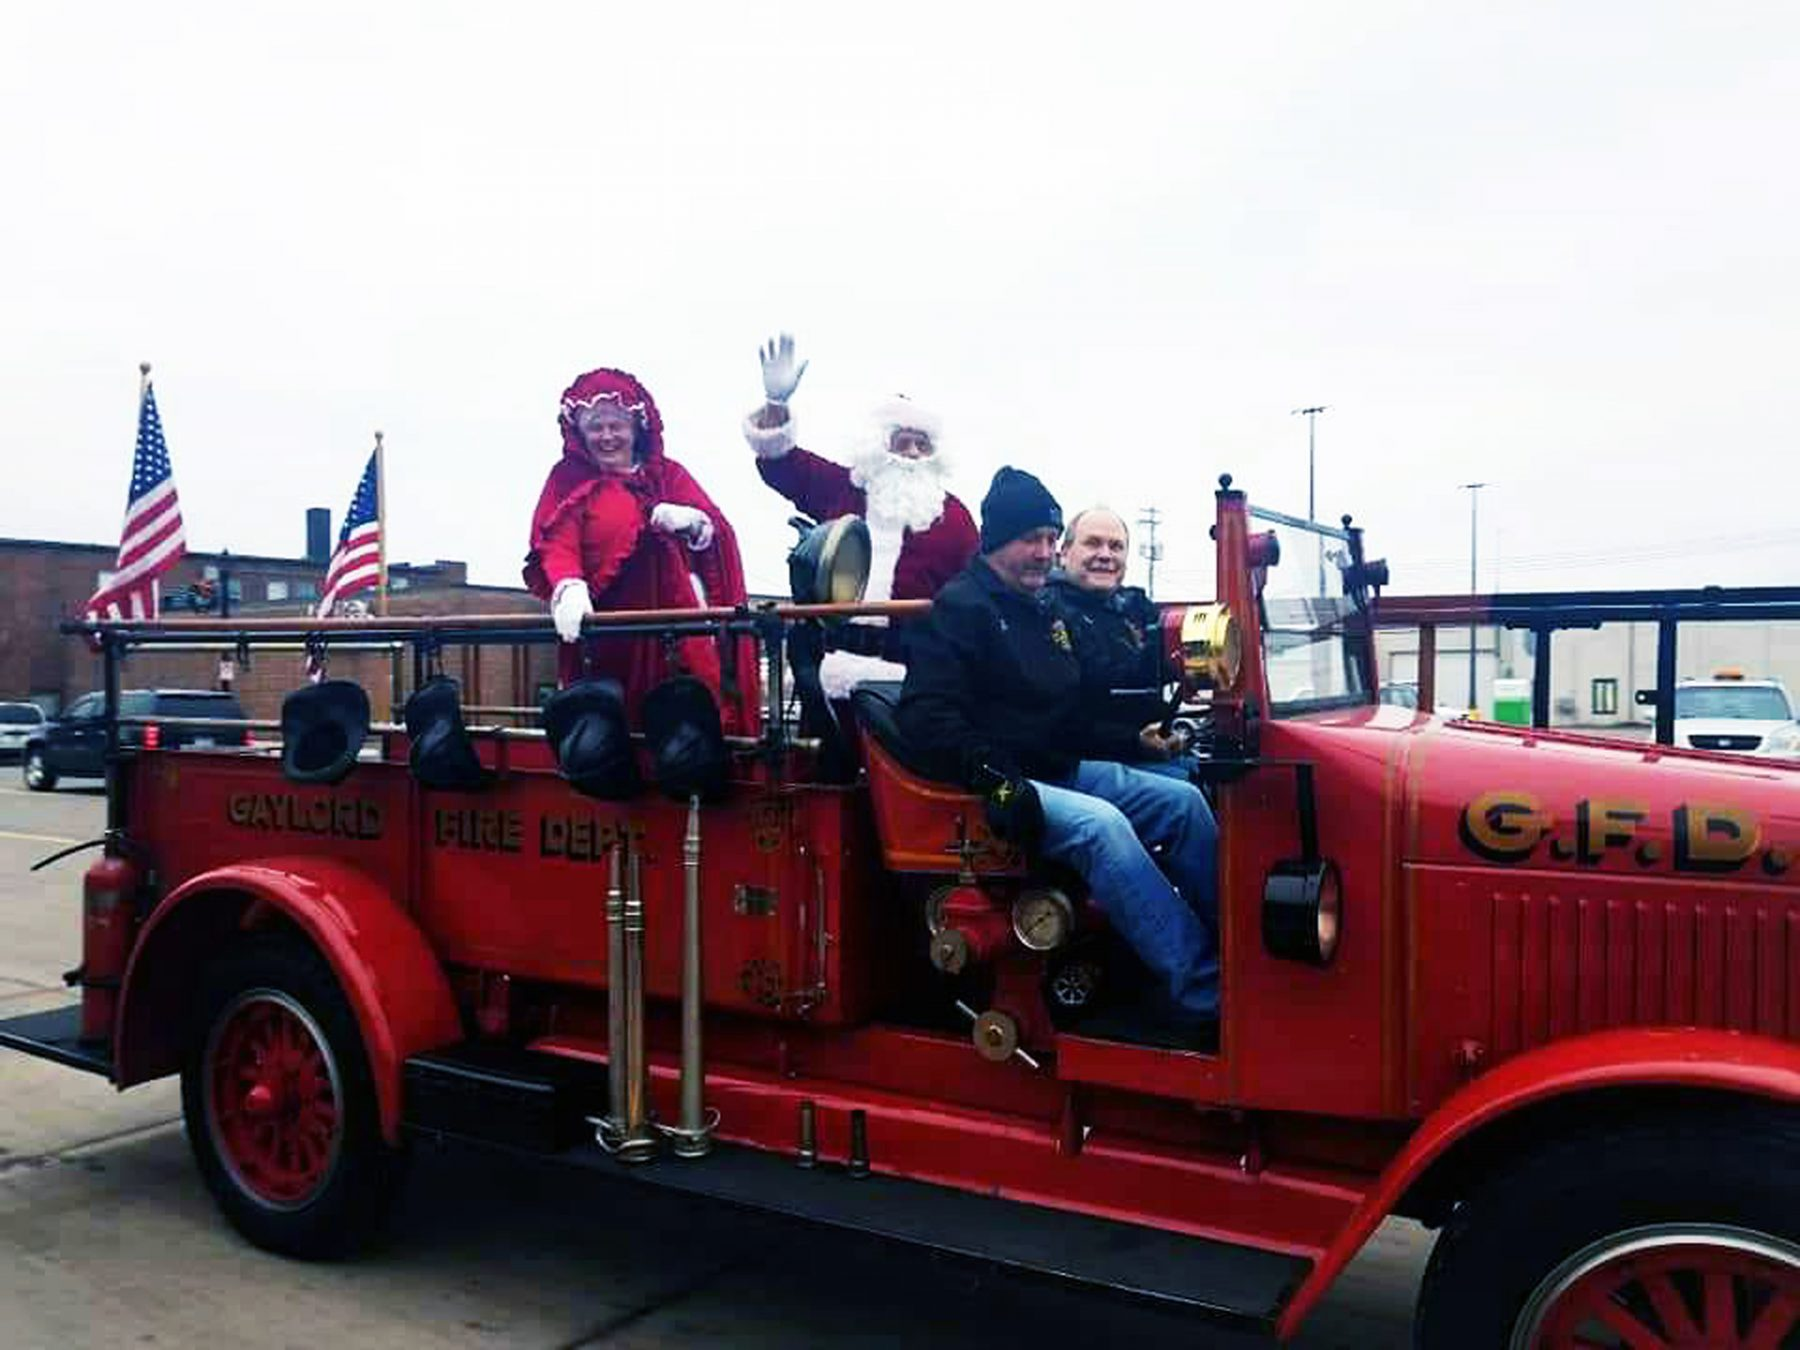 Mr. & Mrs. Claus arrived at the library on an old fashioned fire engine